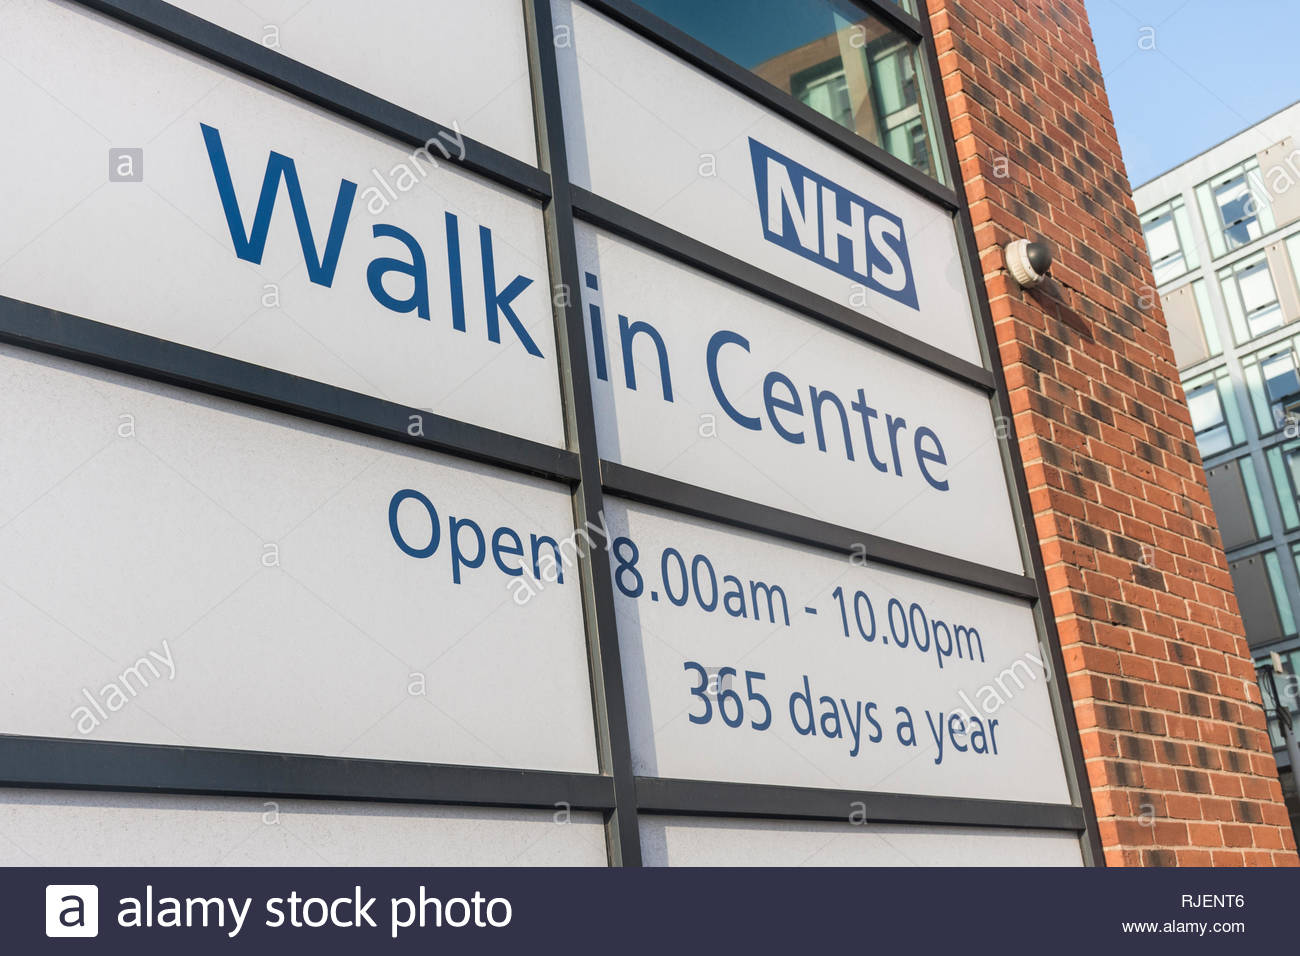 NHS Walk in Centre in Sheffield, South Yorkshire, England, UK - Stock Image